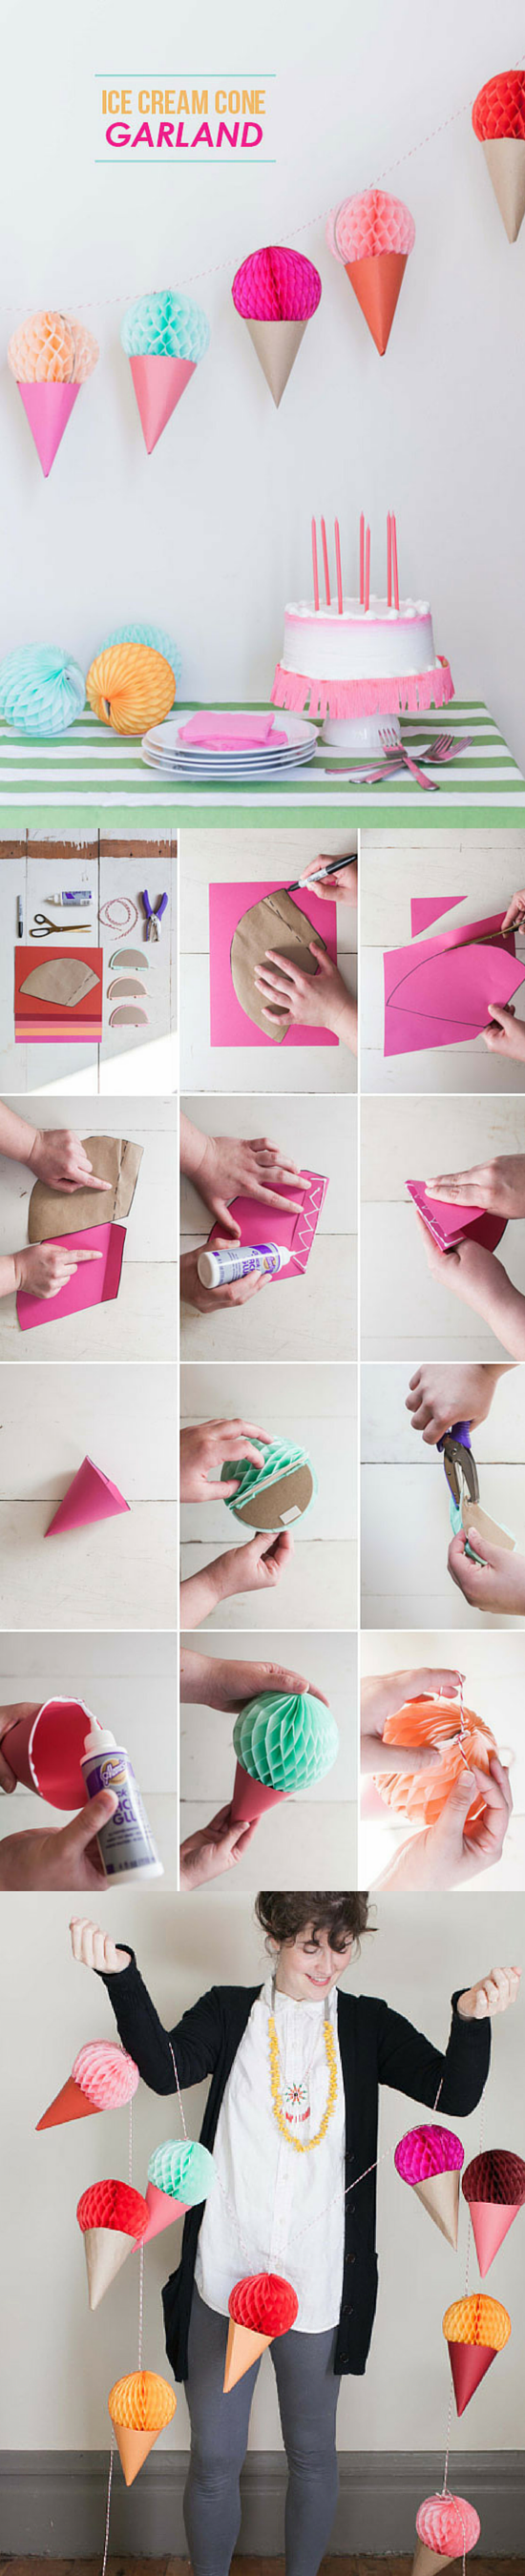 Easy cute ICE CREAM CONE GARLAND DIY